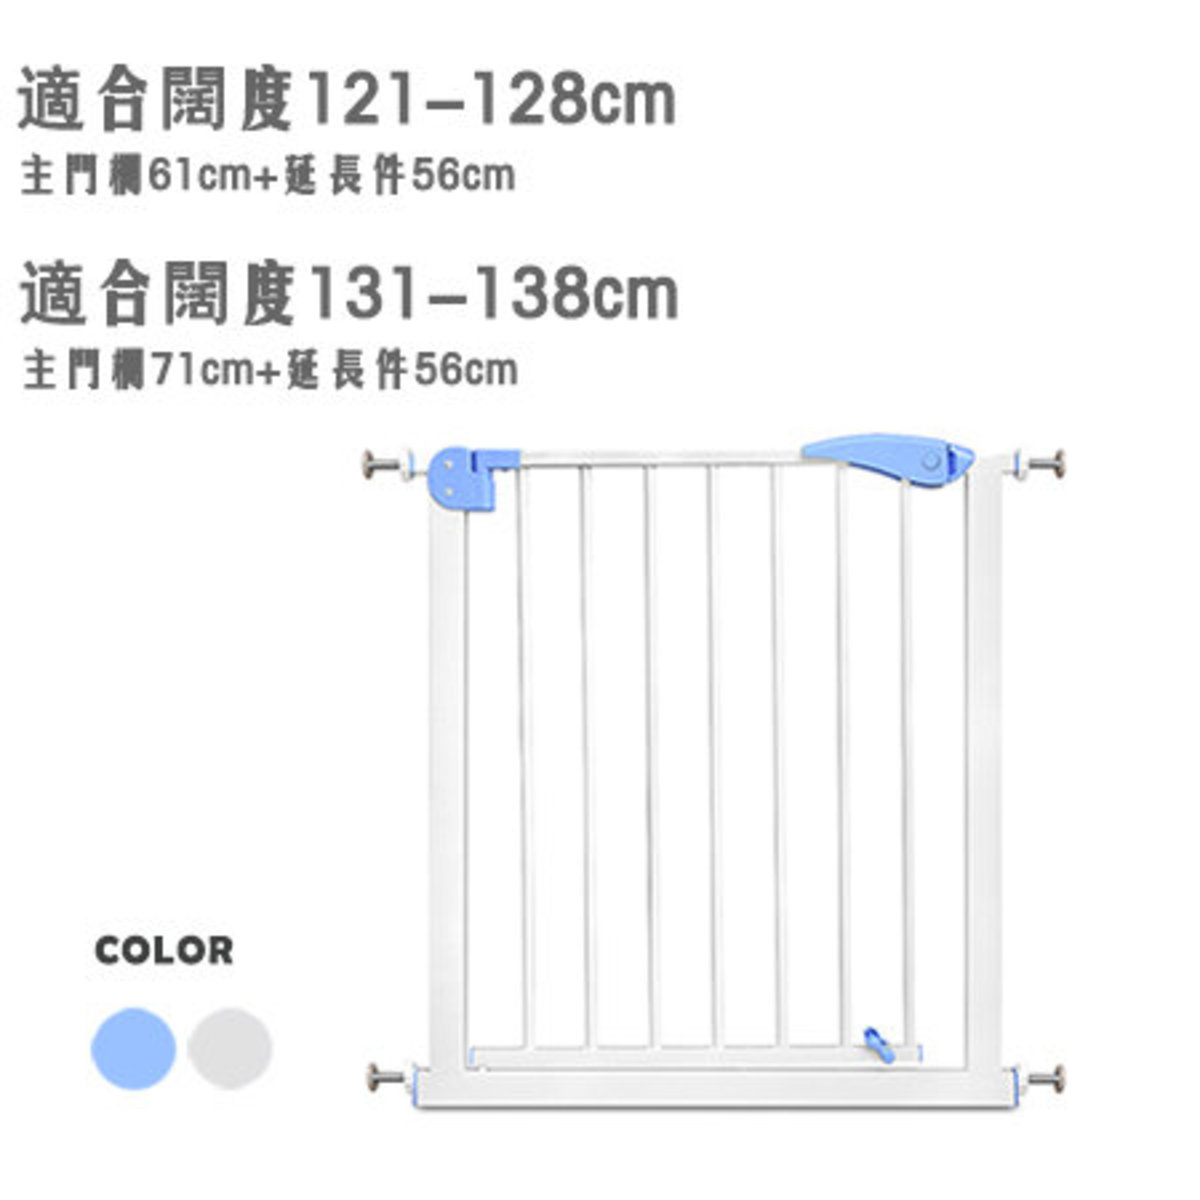 Baby Safety Gate with Extension Parts 61+56cm (Grey) RG861-02-56